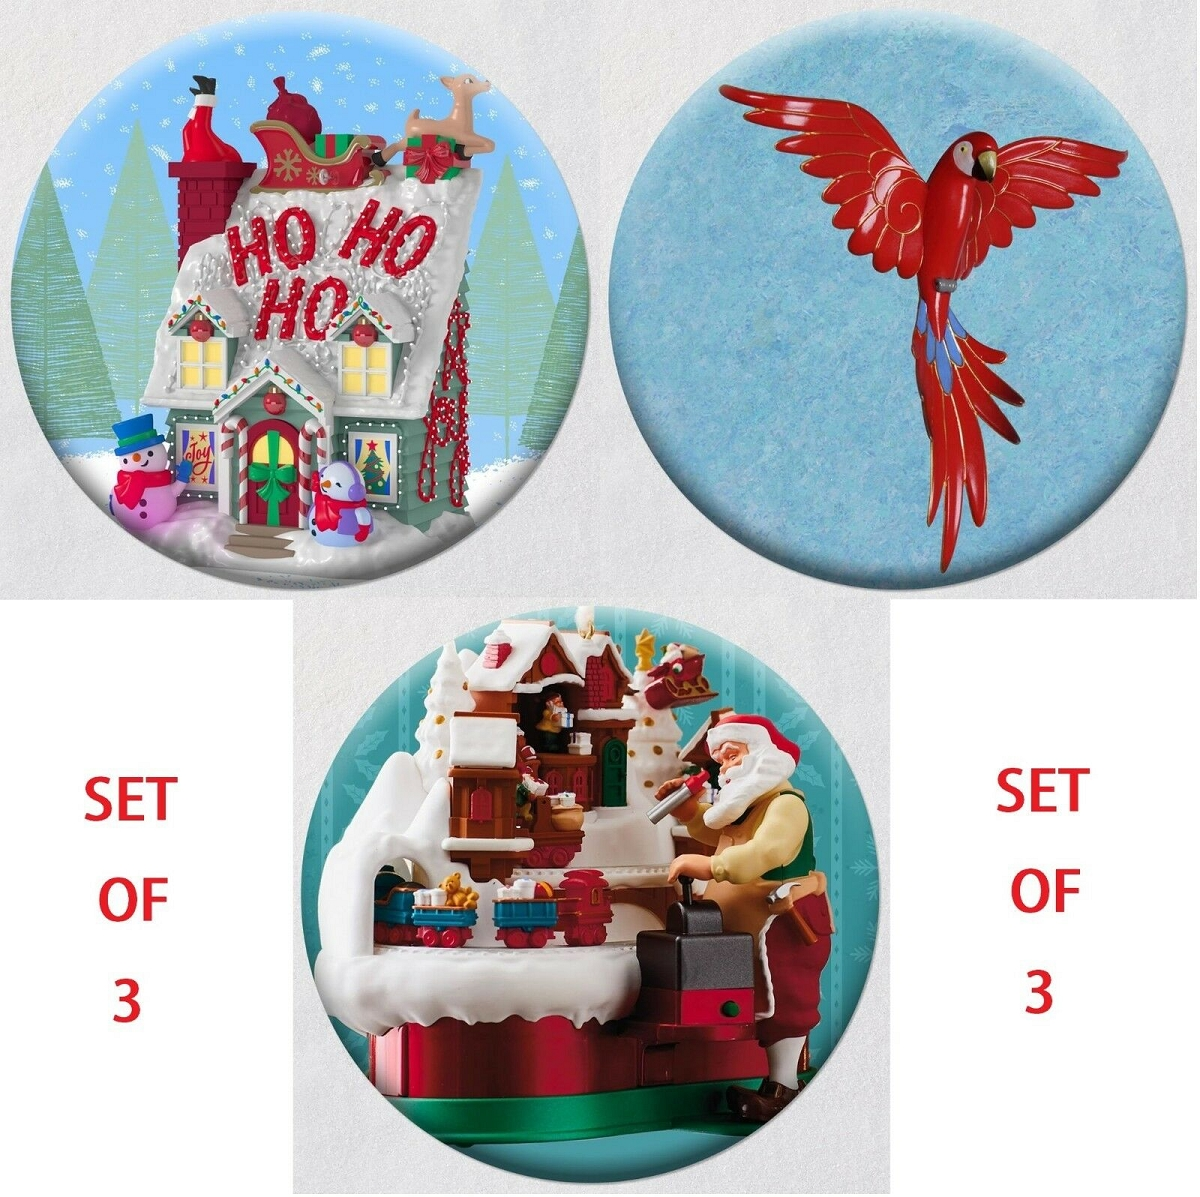 2018 Santas Magic Train, Merriest House and Pretty Parrot - set of three BUTTONS